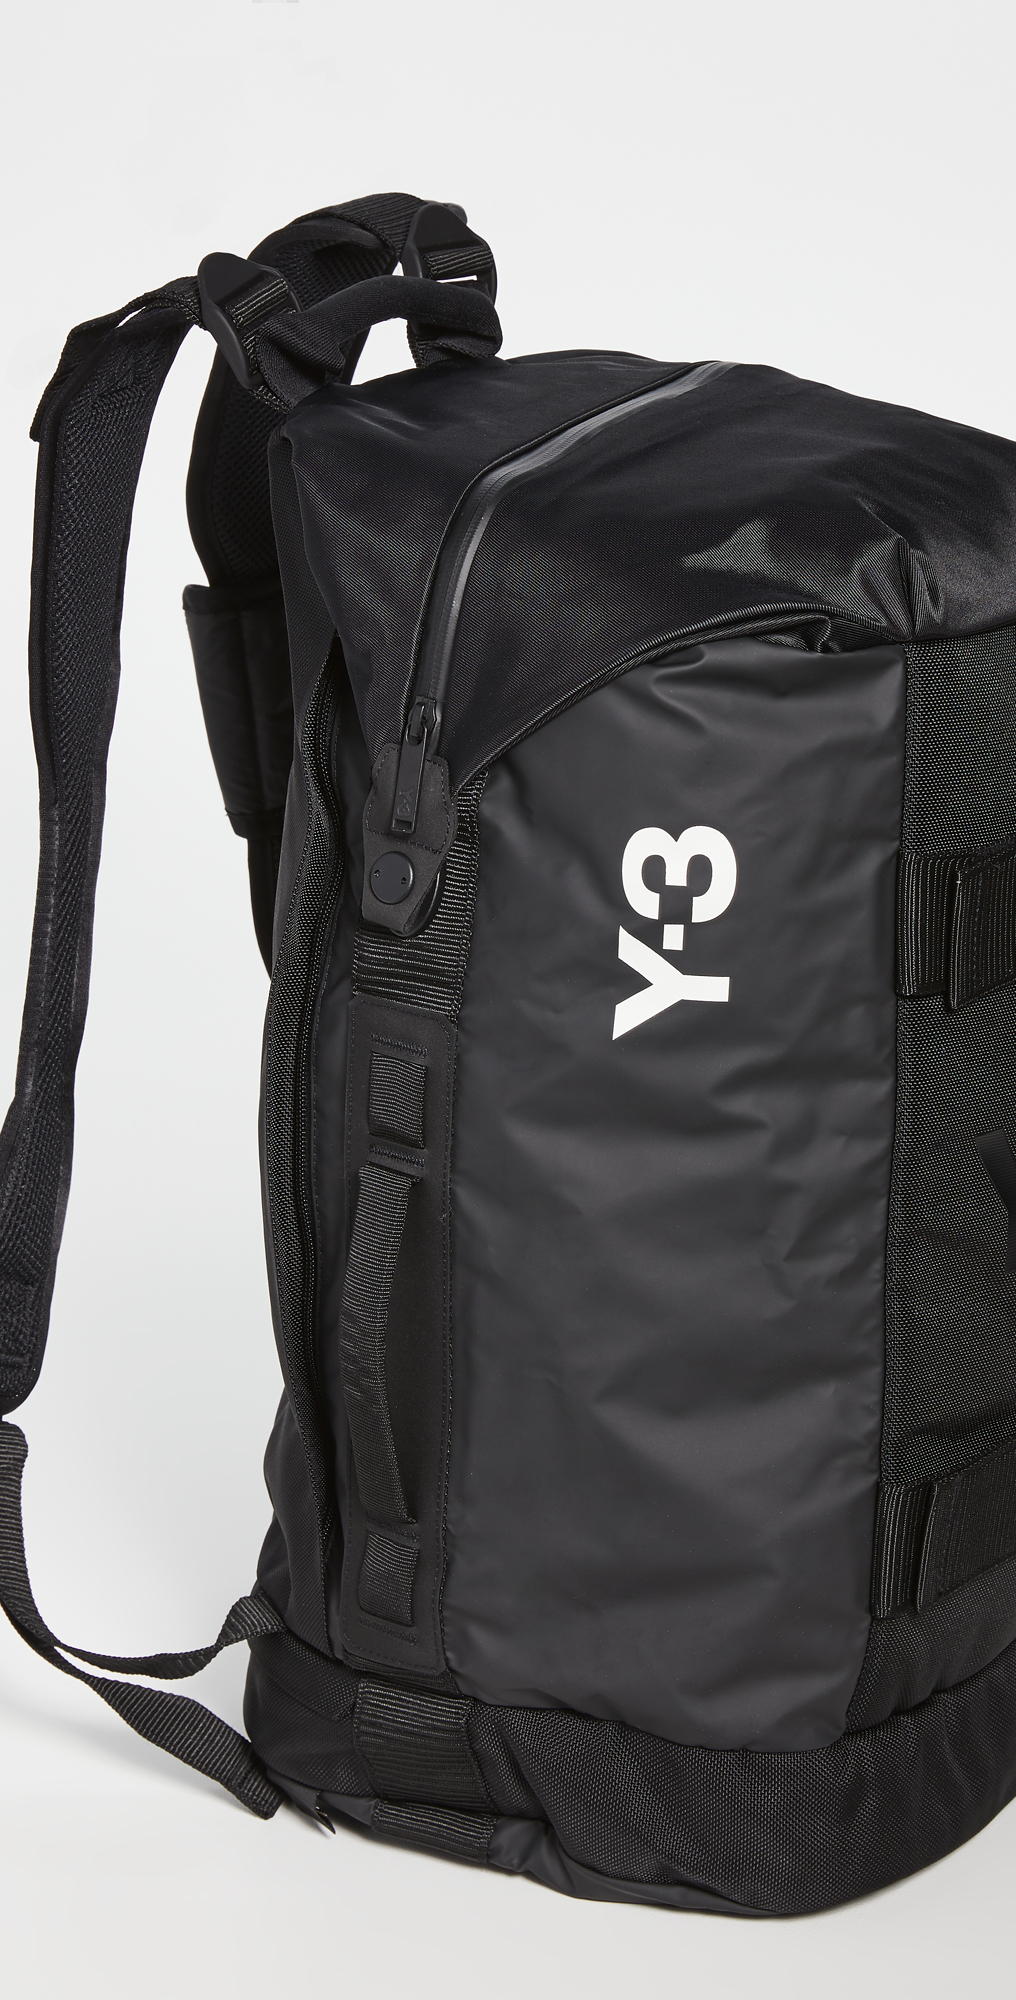 Y 3 Hybrid Duffel Bag Backpack East Dane